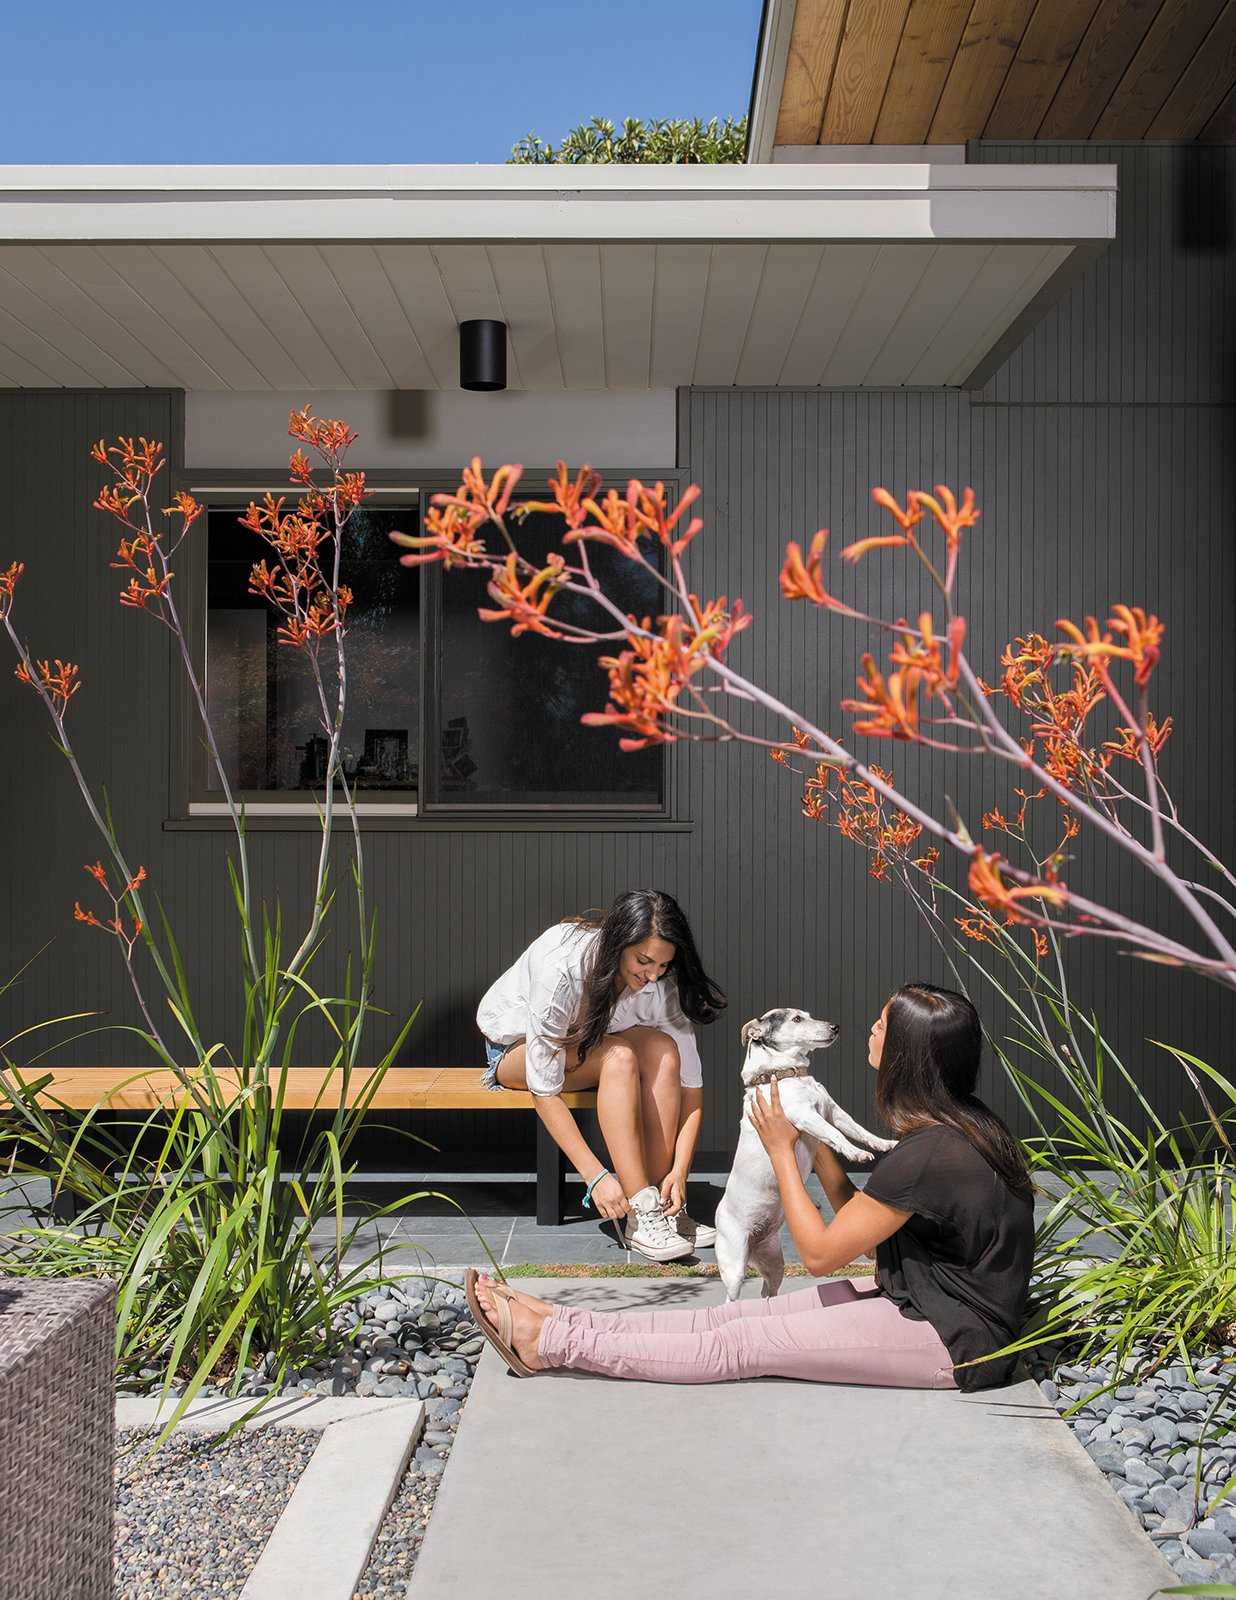 Outdoor, Hardscapes, Walkways, Concrete Patio, Porch, Deck, and Front Yard Their daughters, Annapurna, left, and Siddartha, play with their dog, Anouck, beneath the kangaroo paws in the entry garden courtyard.  Hardscape Design from Creative Landscape Design for a Renovated Eichler in California